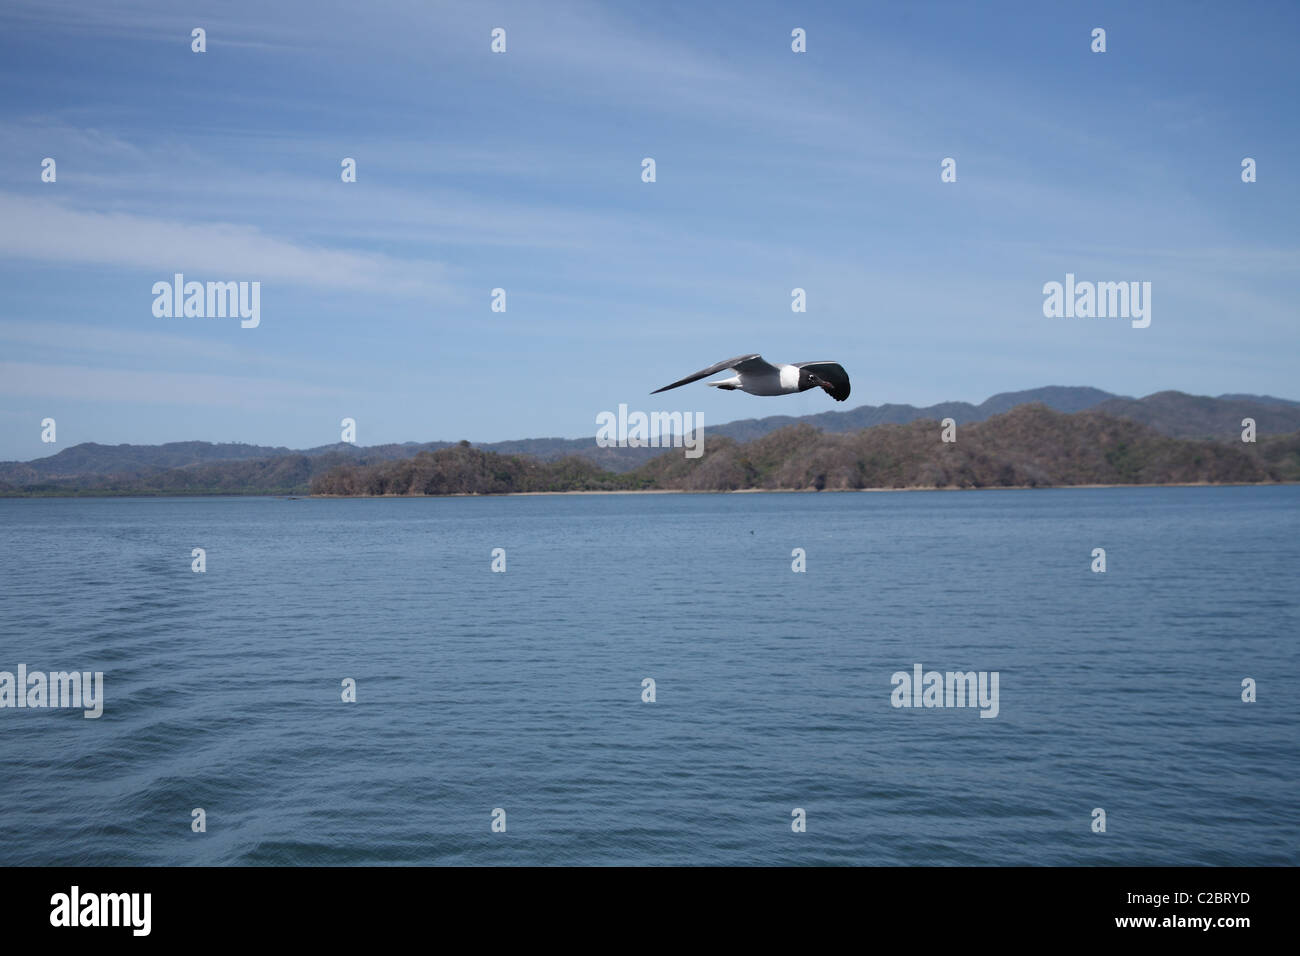 Laughing gull soaring next to a ferry heading to Puntarenas, Costa Rica. - Stock Image